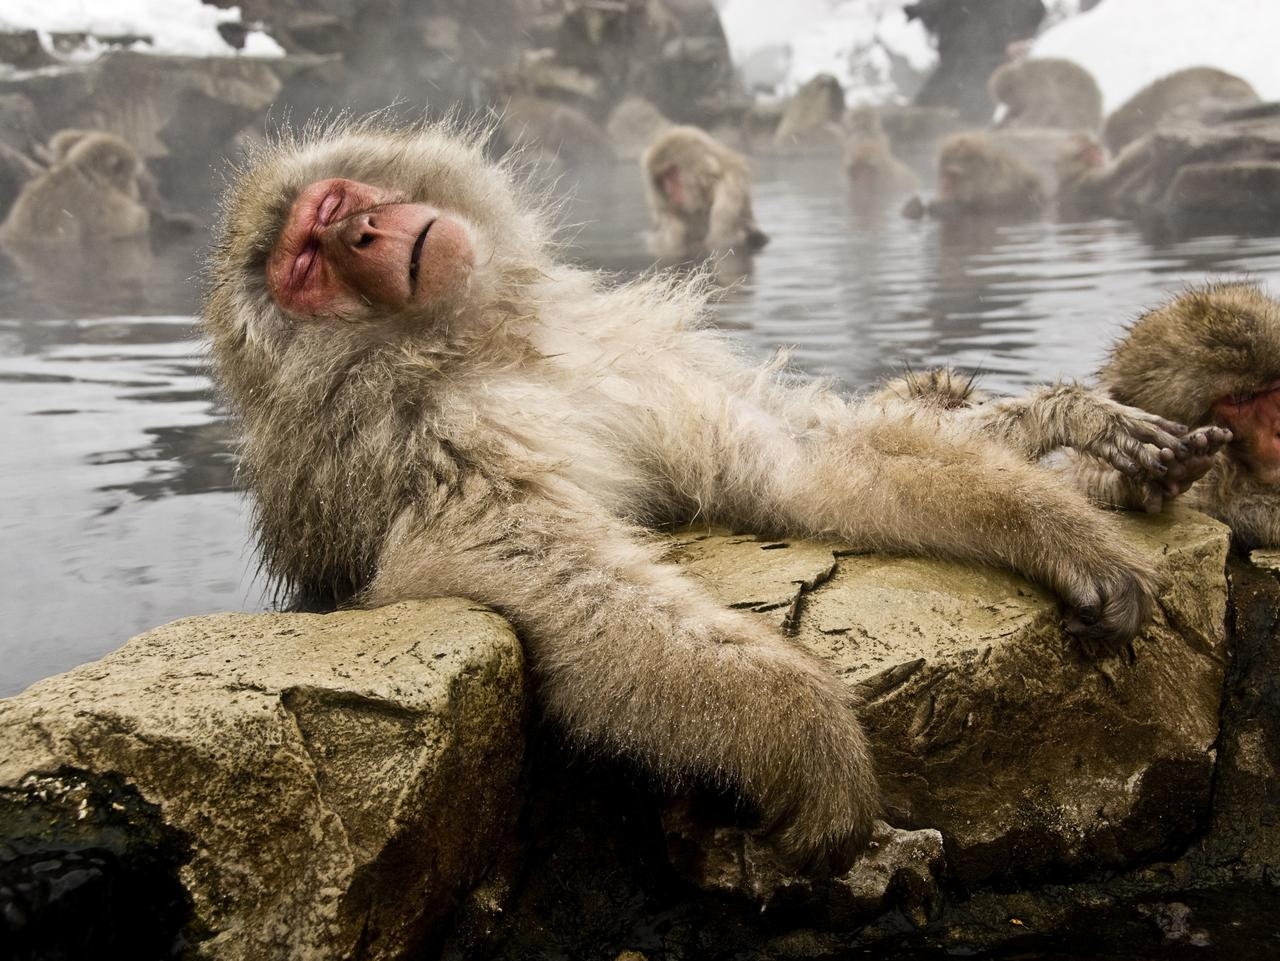 Snow monkeys (Japanese macaque) relaxing in a hot spring pool (onsen)at the Jigokudani-koen in Nagano Japan. Shot in early March.